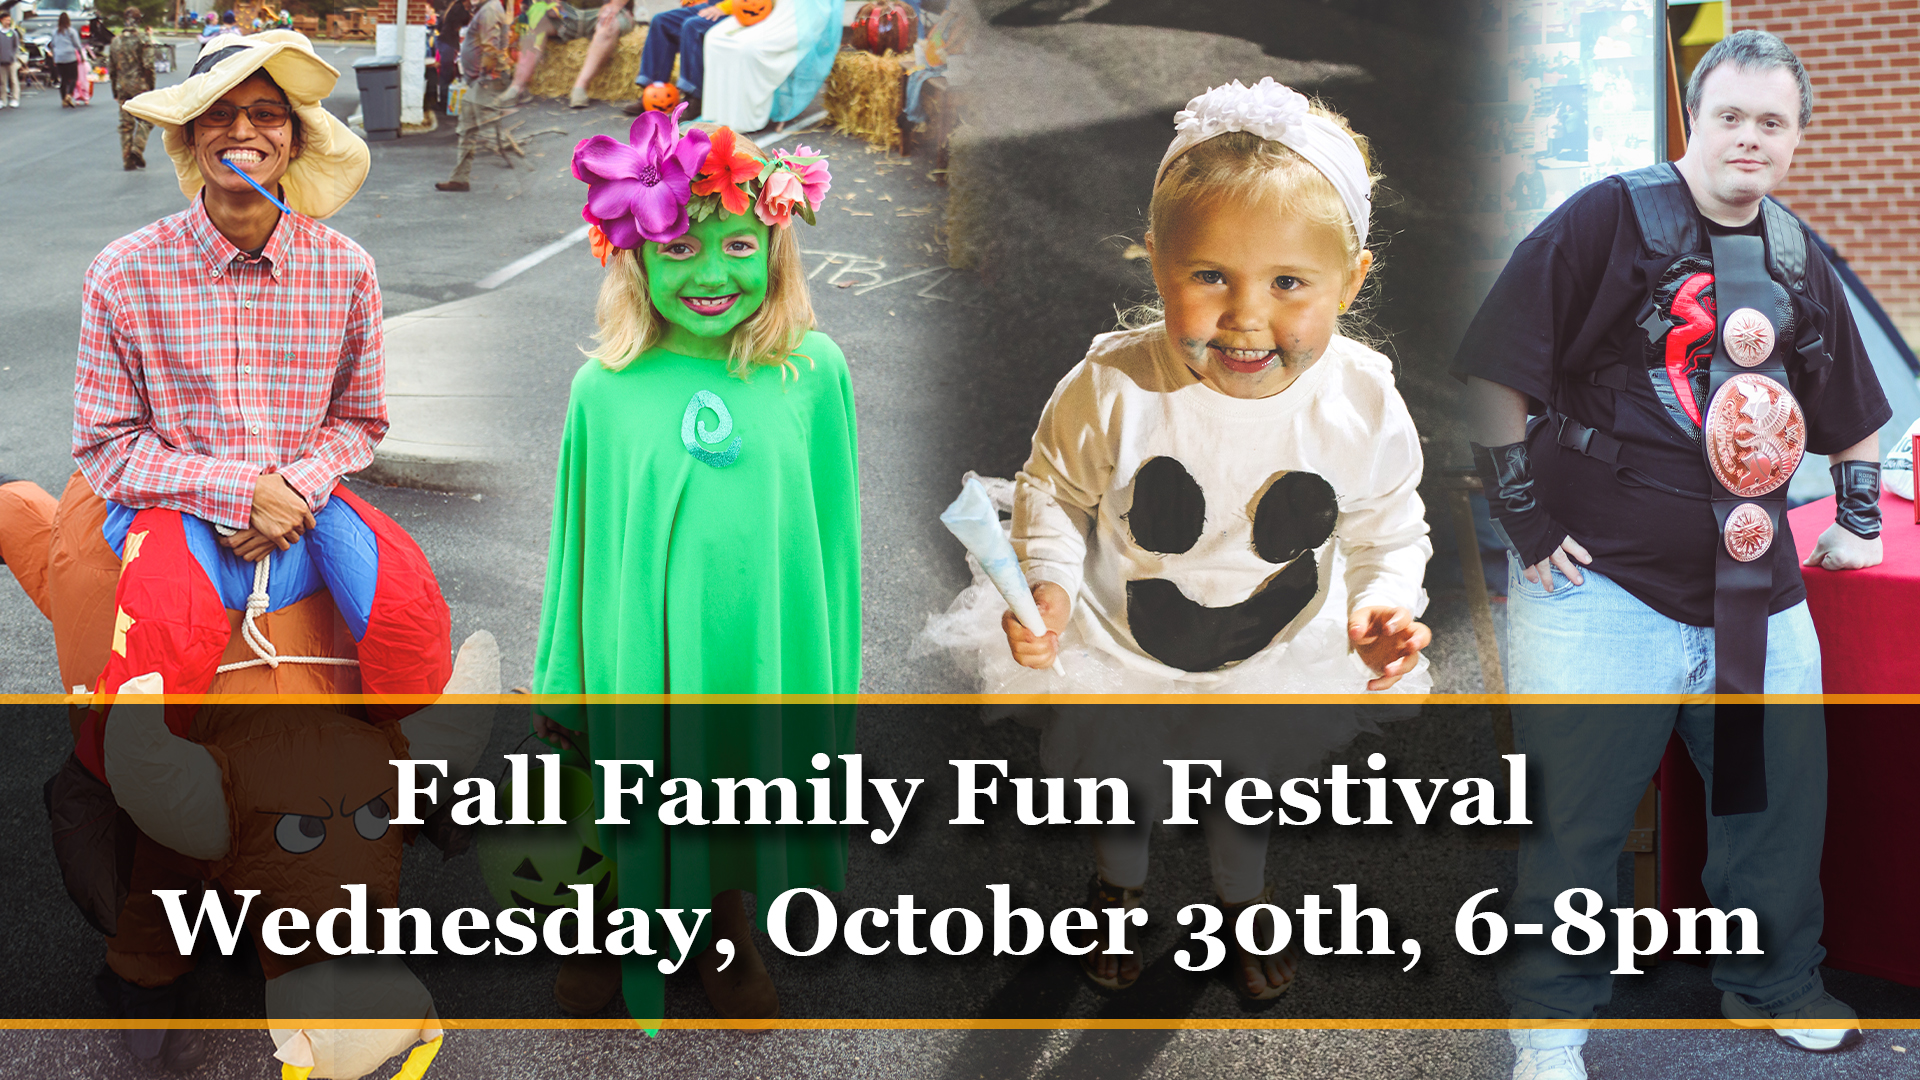 Fall Family Fun Festival.jpg